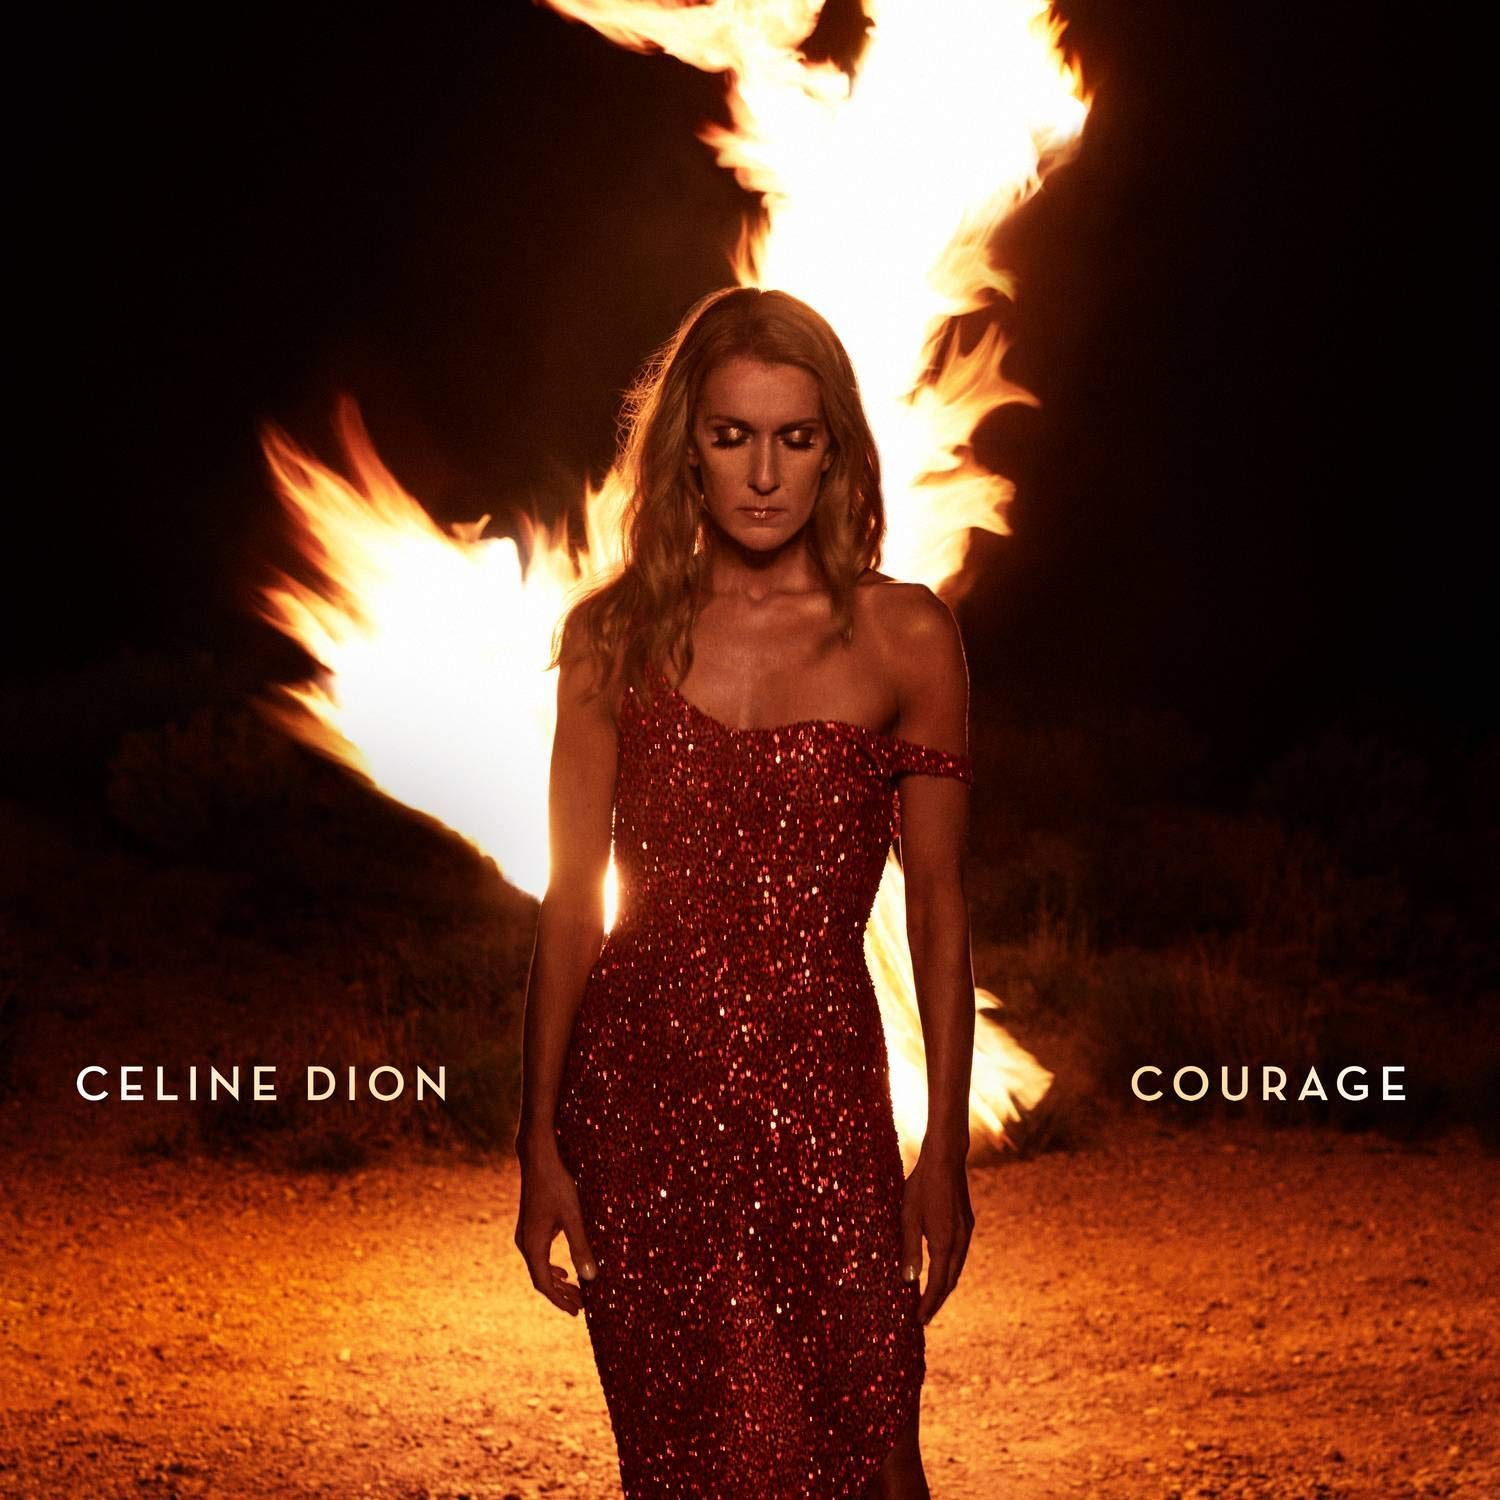 Céline Dion - Courage - Amazon.com Music